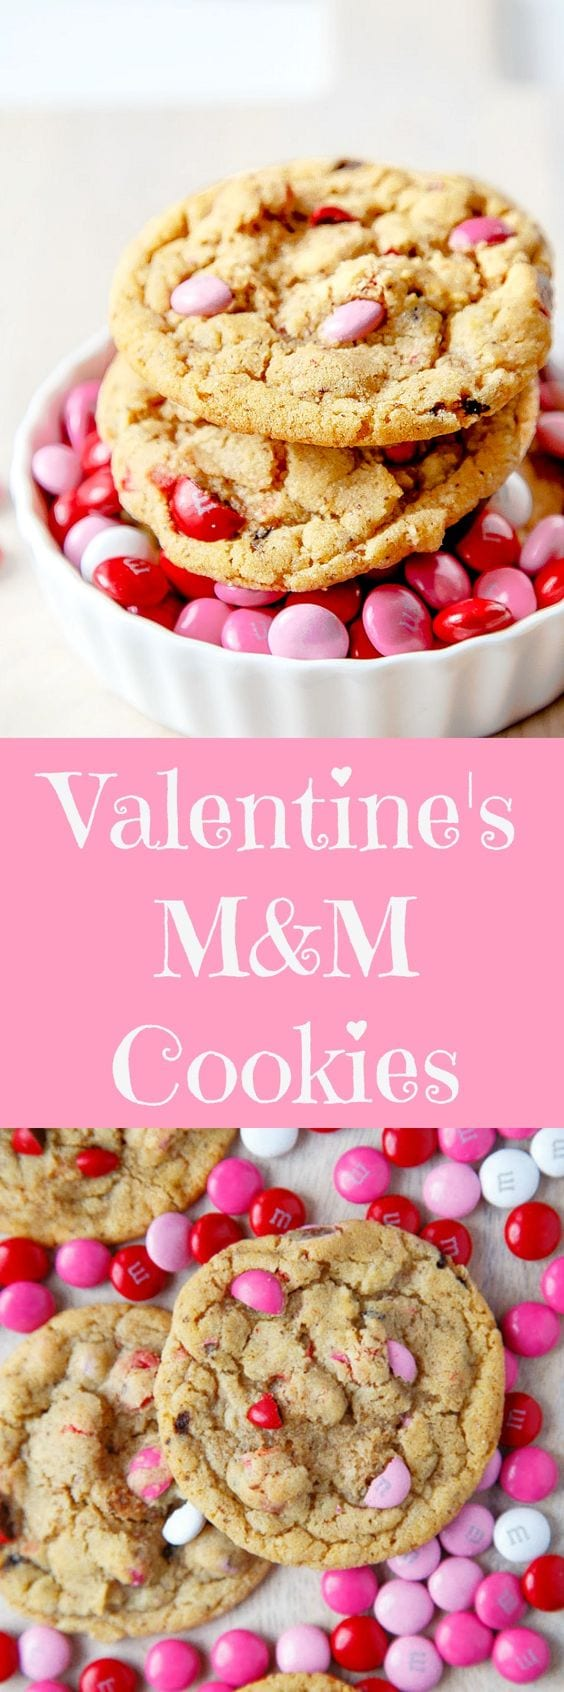 MM cookies with Valentine's Day m&ms. Small batch cookie recipe.